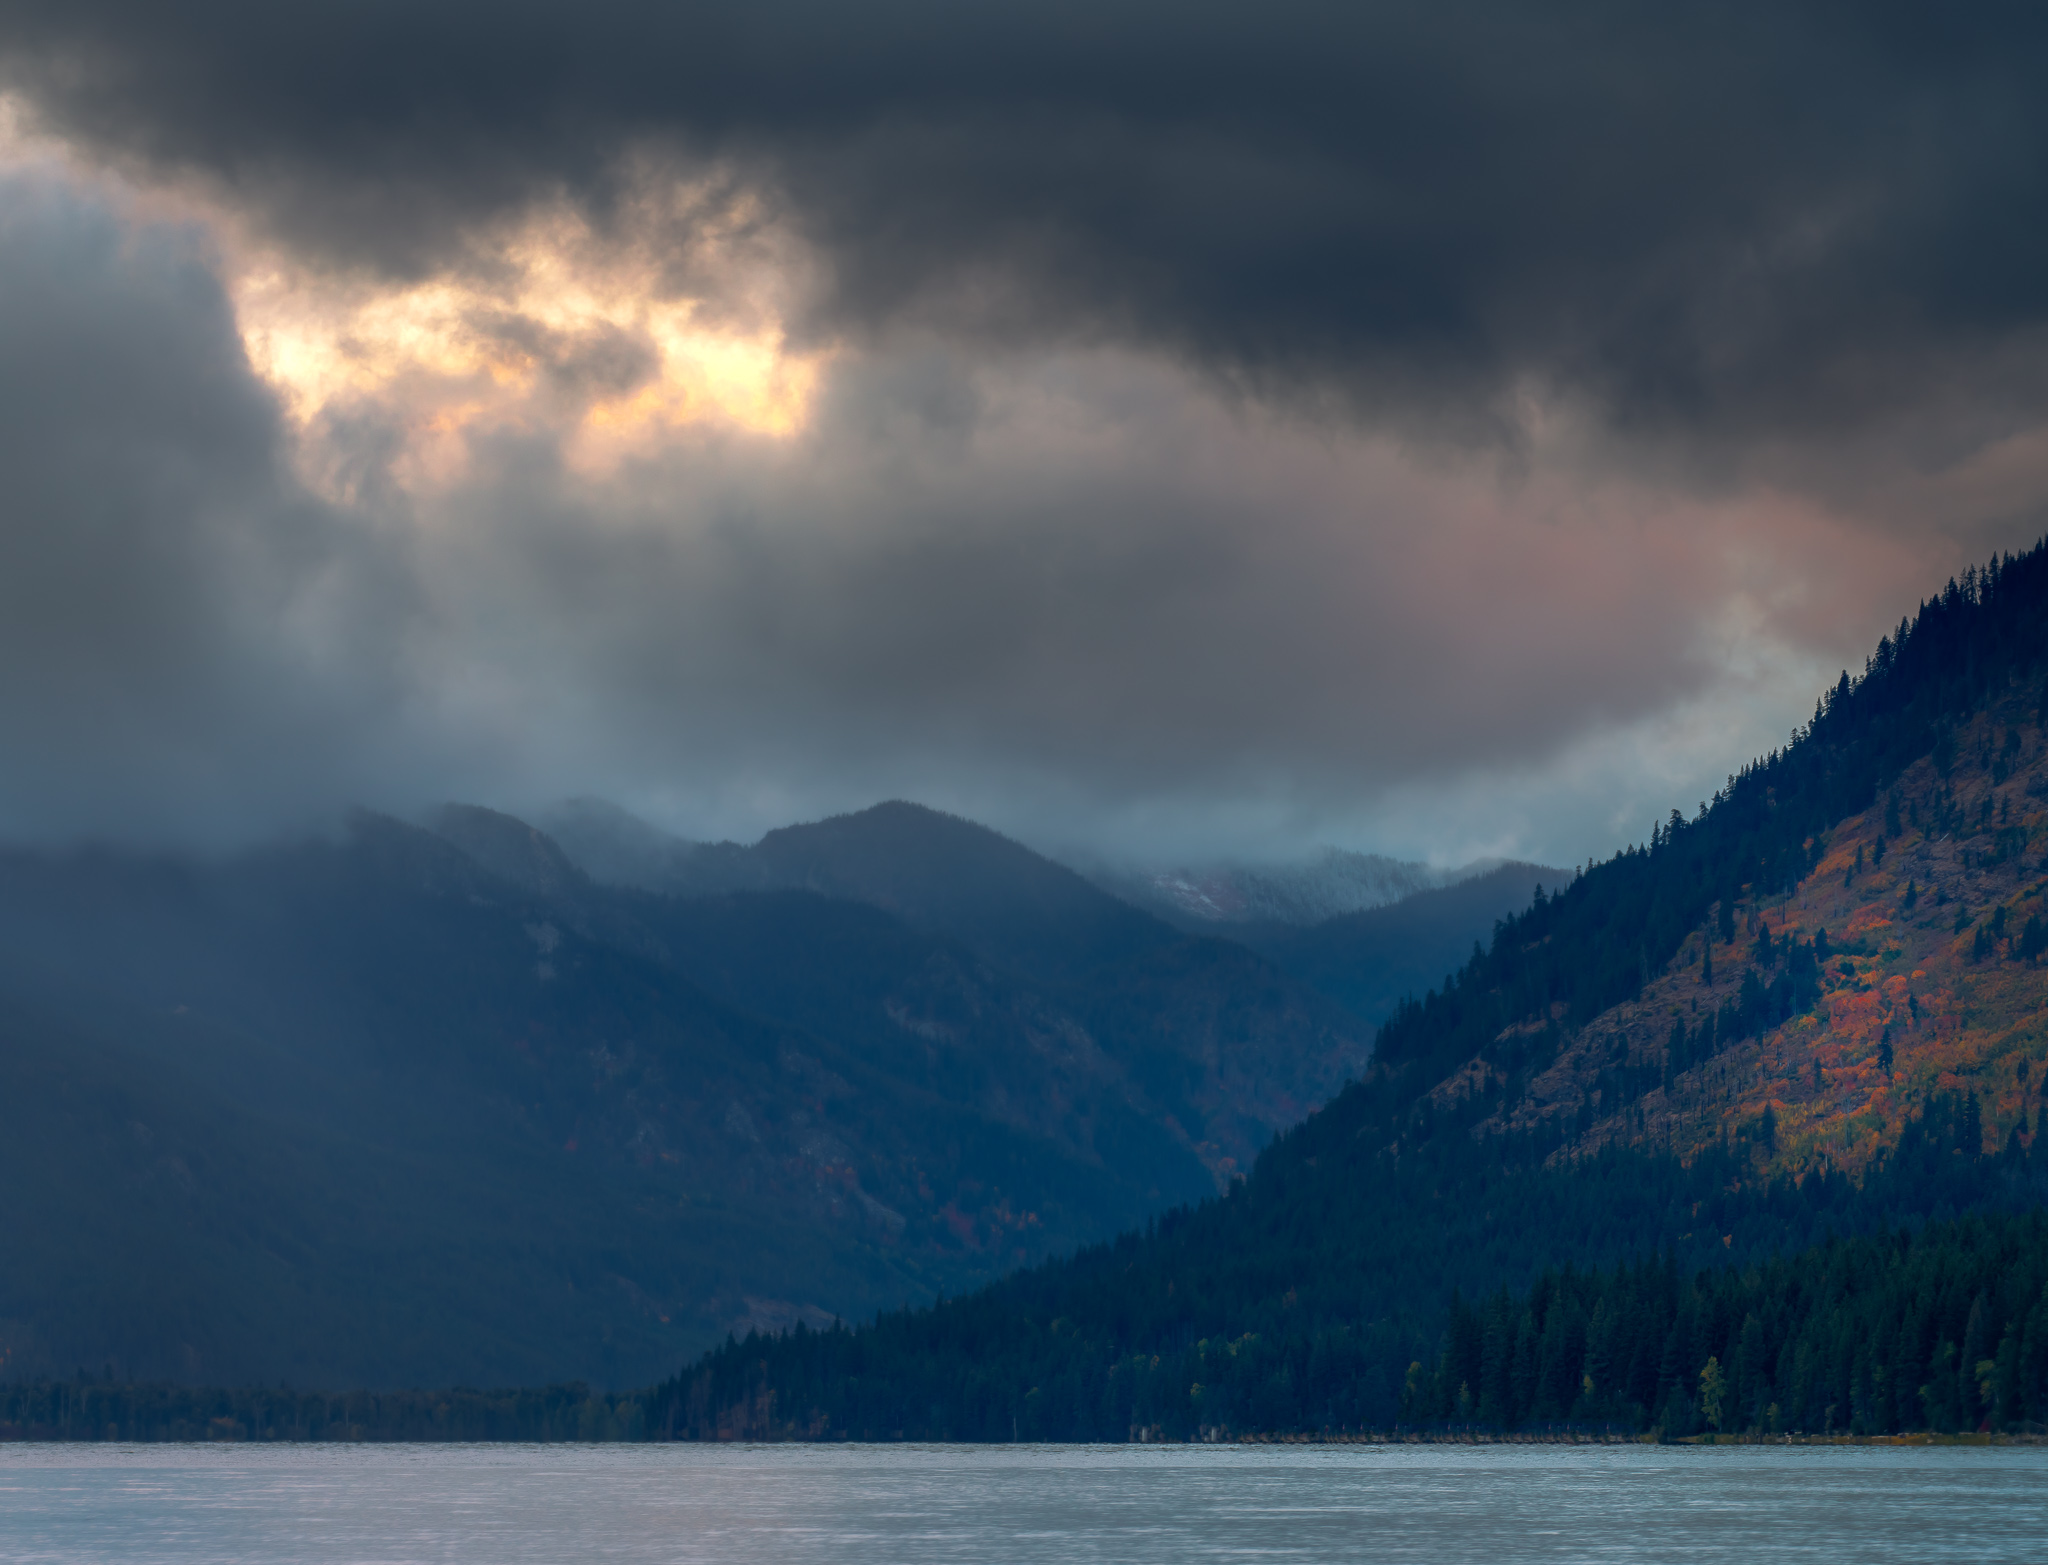 Fall Sunset at Lake Wenatchee